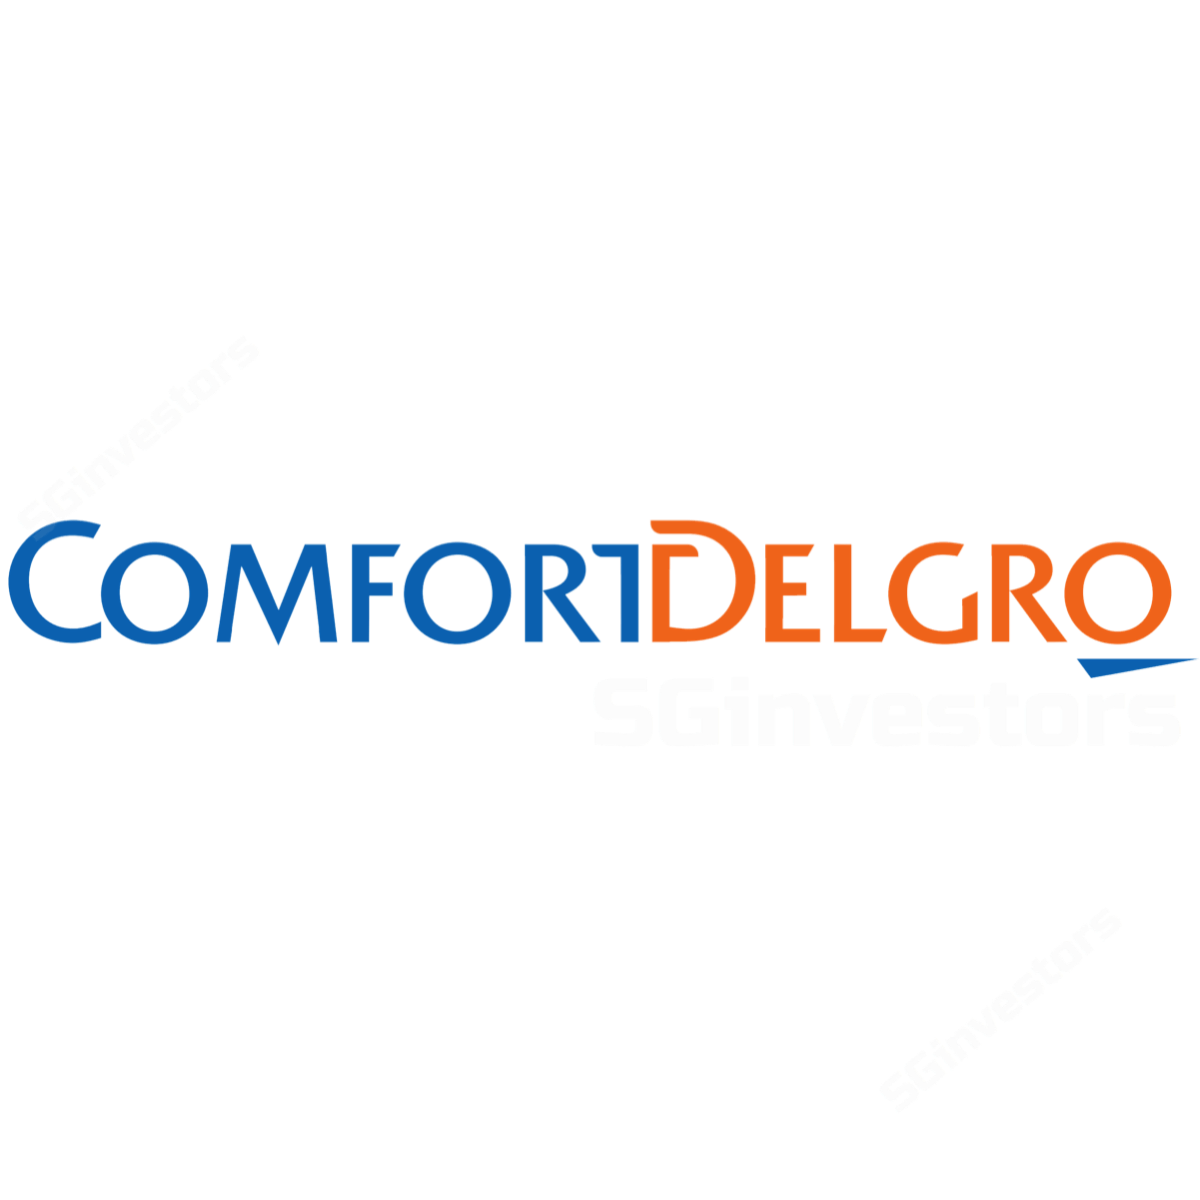 ComfortDelGro Corporation - RHB Invest 2017-01-03: Growth With Improving Yield